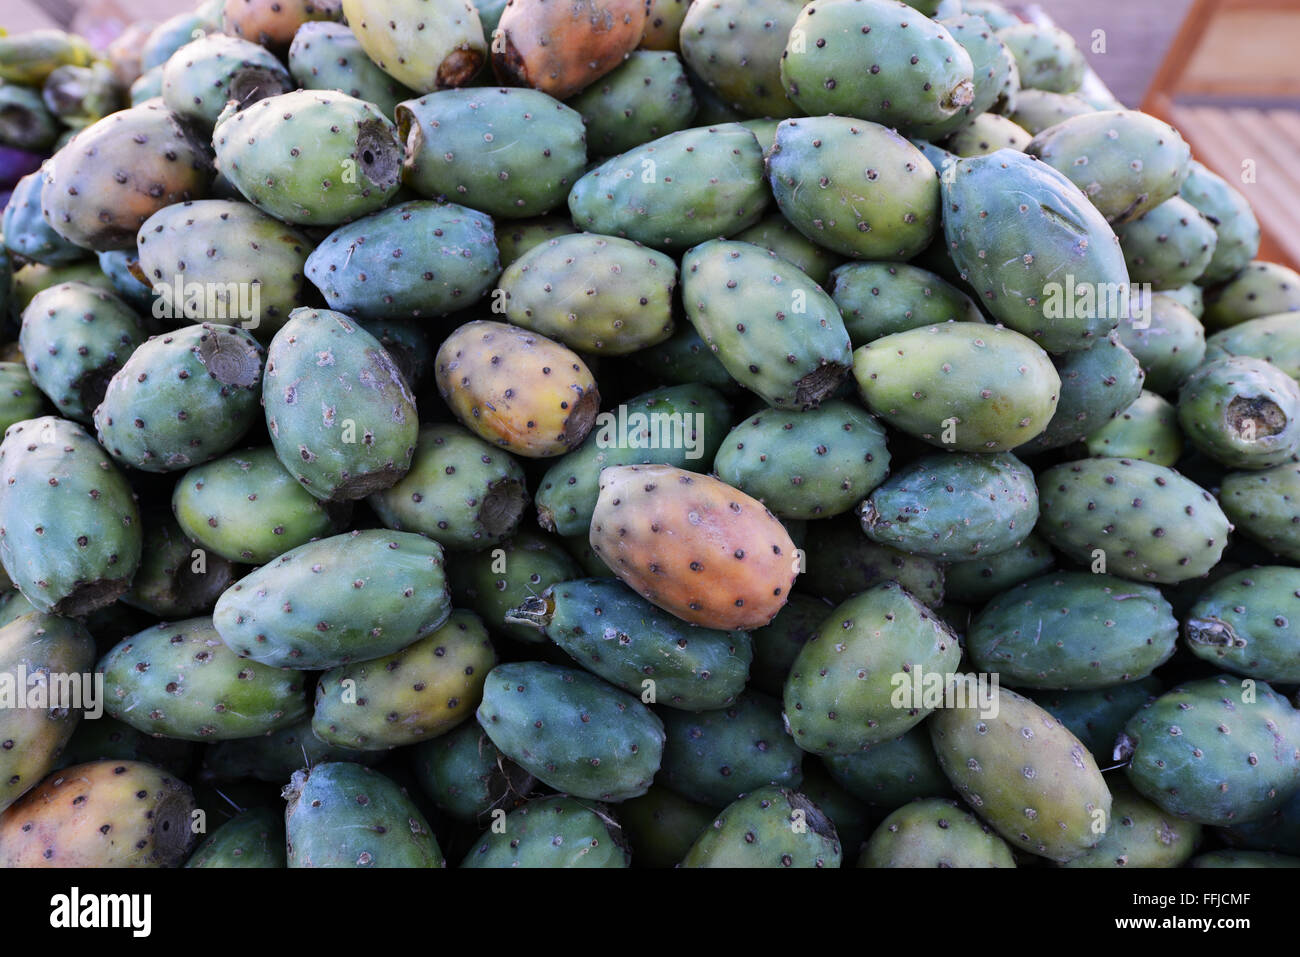 prickly pears in a market in Morocco. - Stock Image